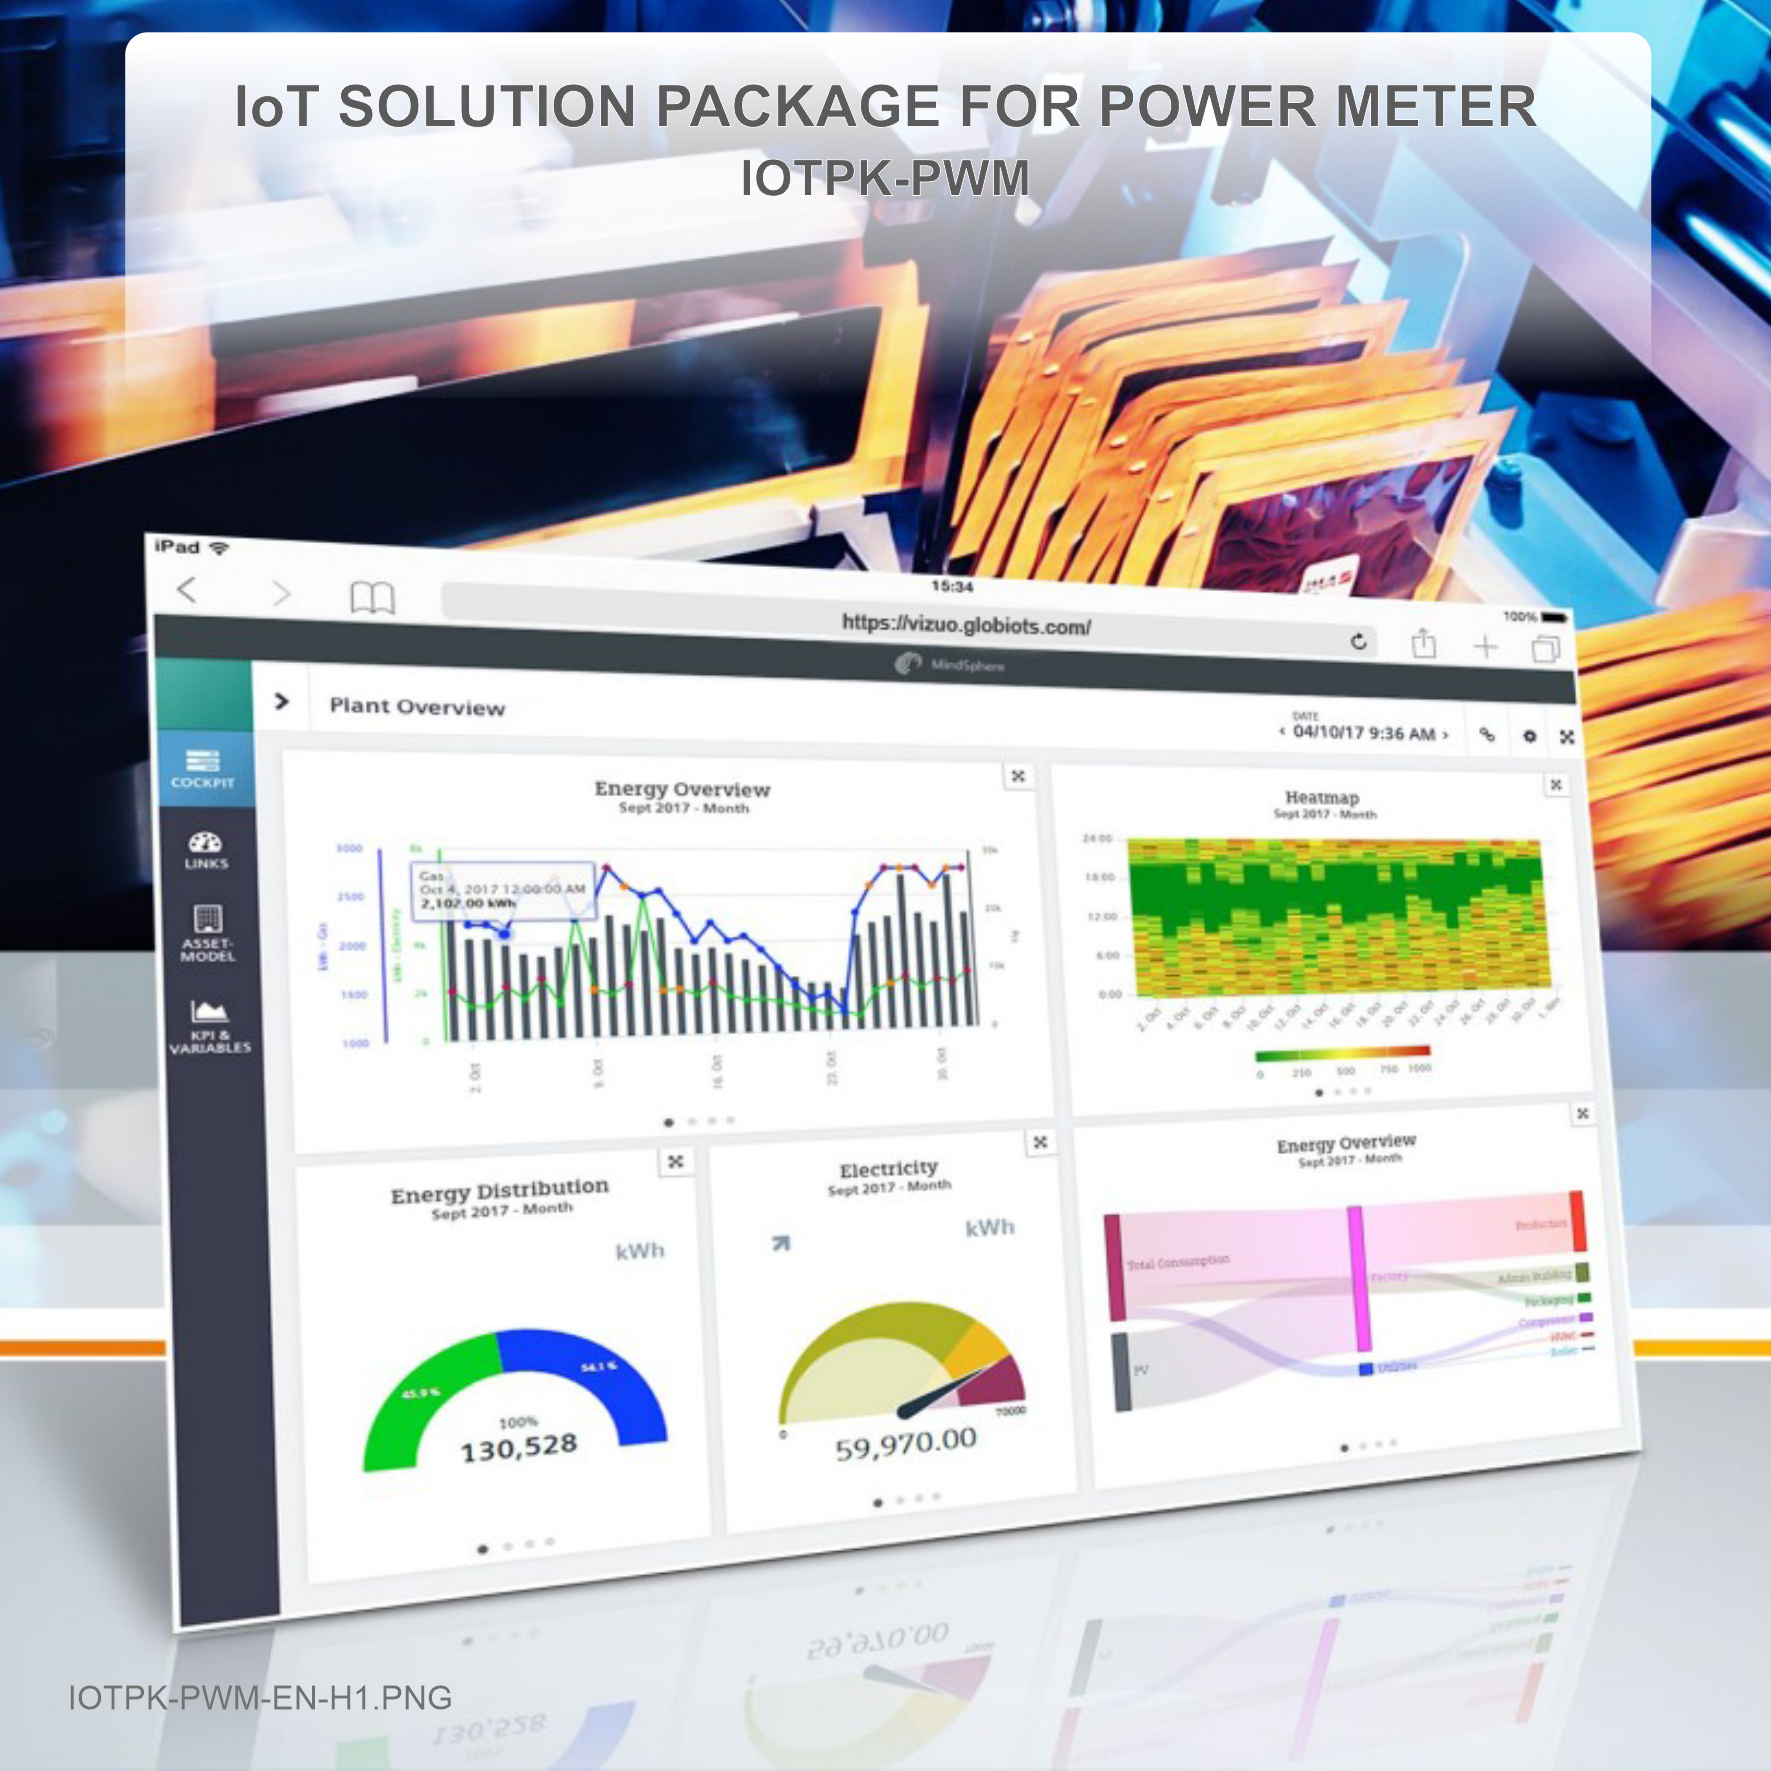 IoT SOLUTION PACKAGE FOR POWER METER